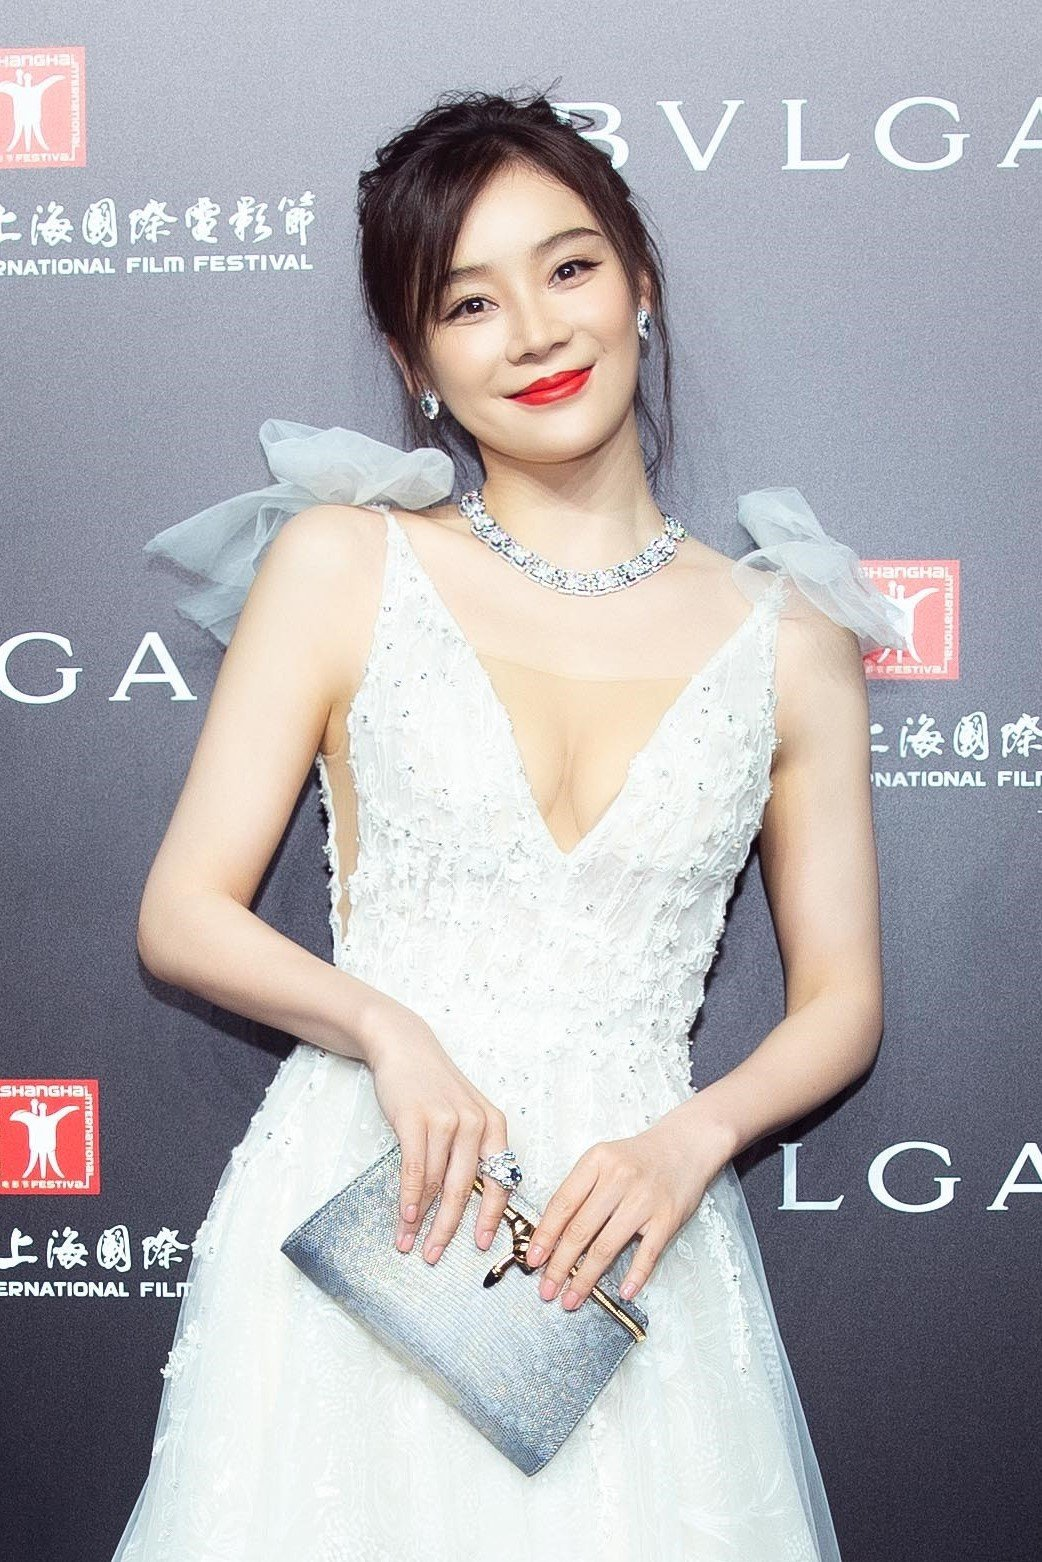 chinese pop idols kris wu and sammi cheng among stars at